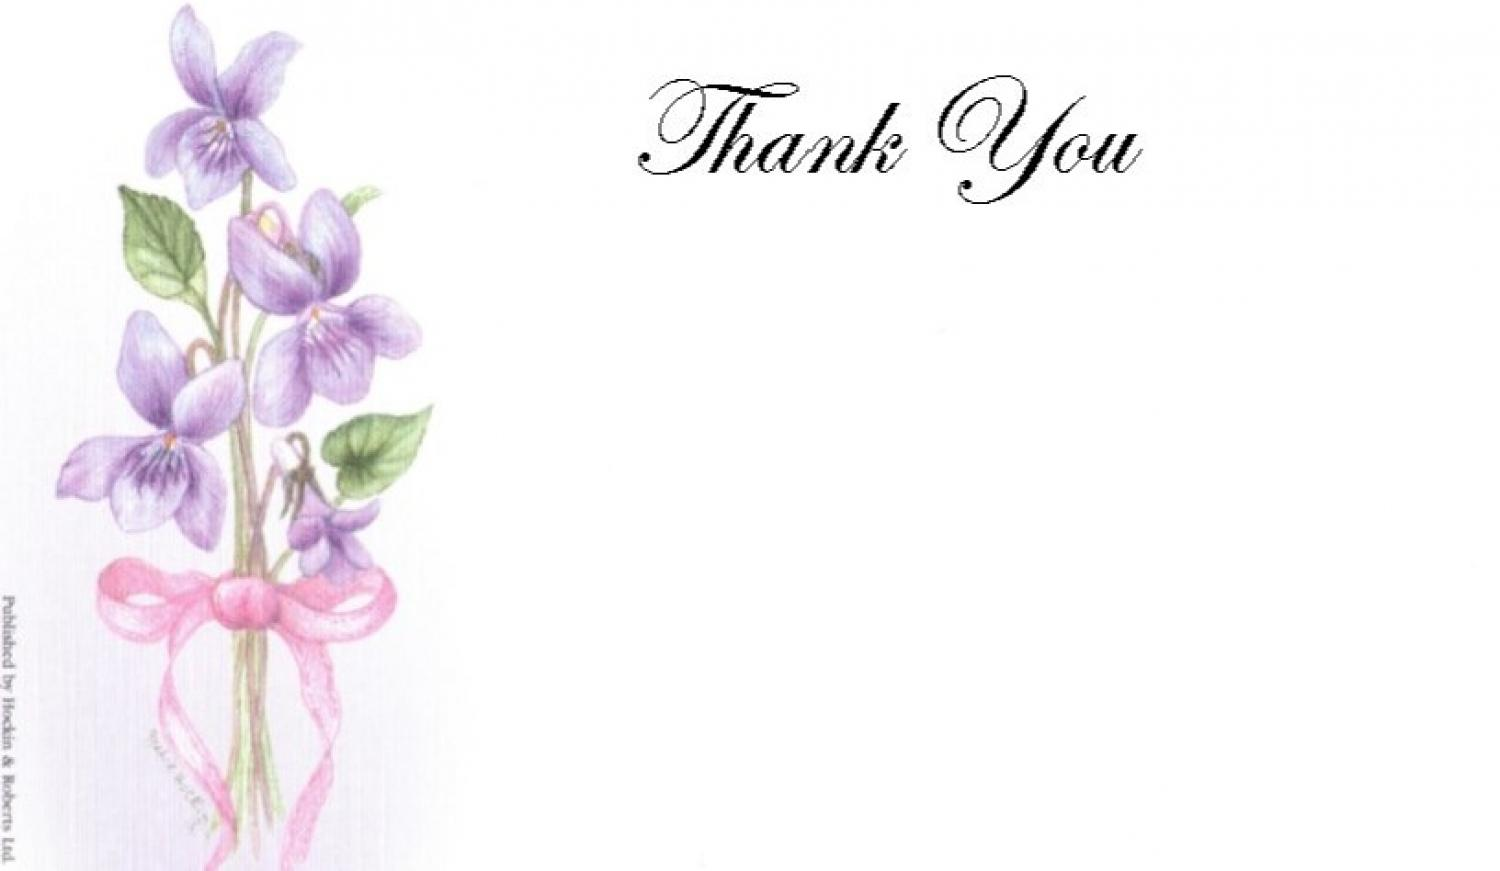 Thank You Cards - Violets